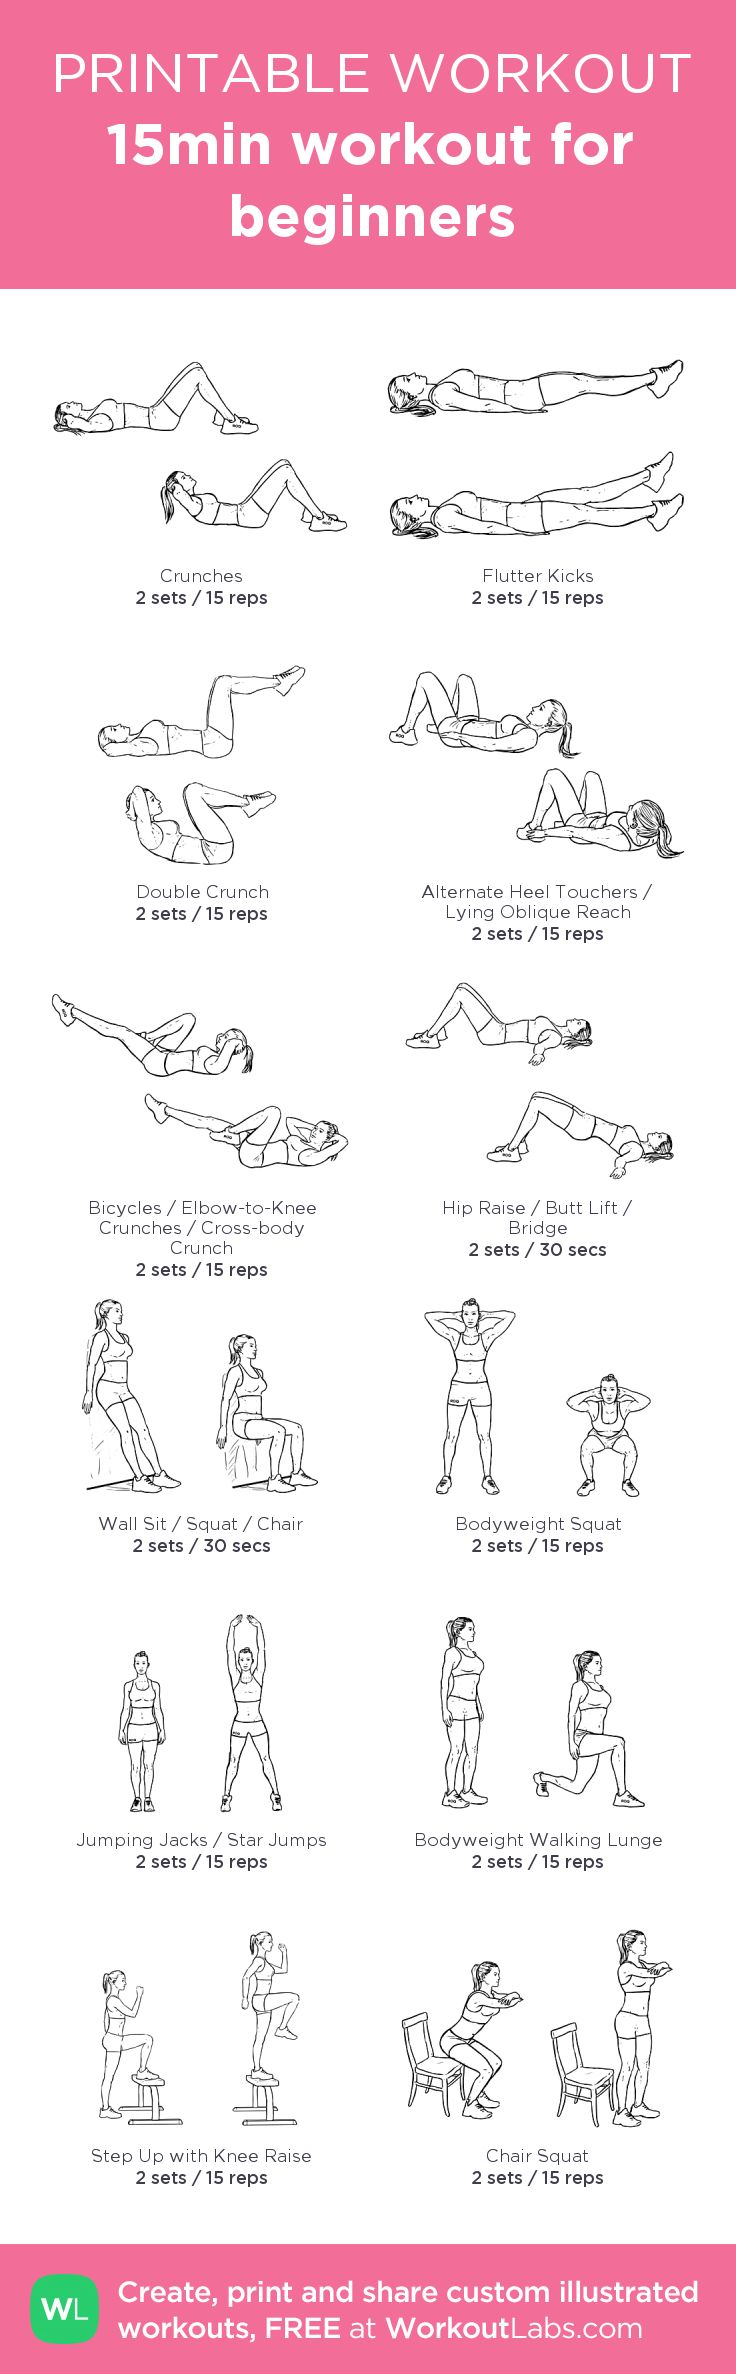 15min workout for beginners: my visual workout created at WorkoutLabs.com • Click through to customize and download as a FREE PDF! #customworkout